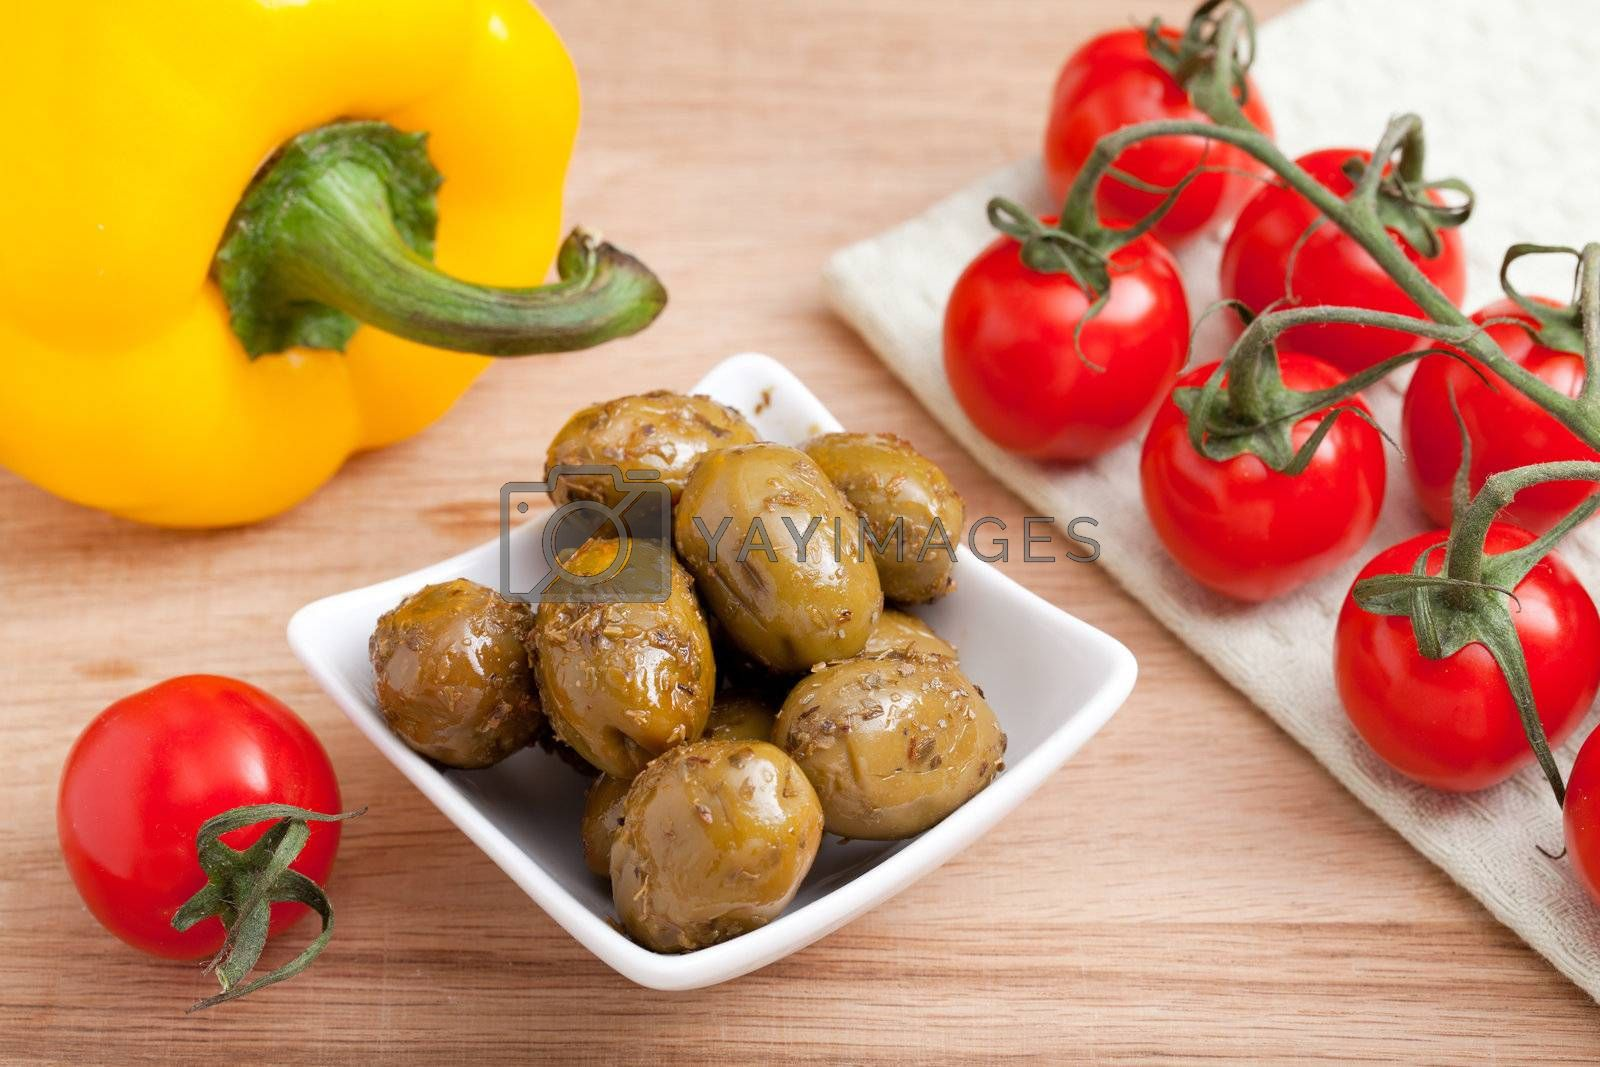 Bunch of ripe red cherry tomatoes  on white napkin, green olives in white glass salad bowl close-up and yellow paprika on wooden table